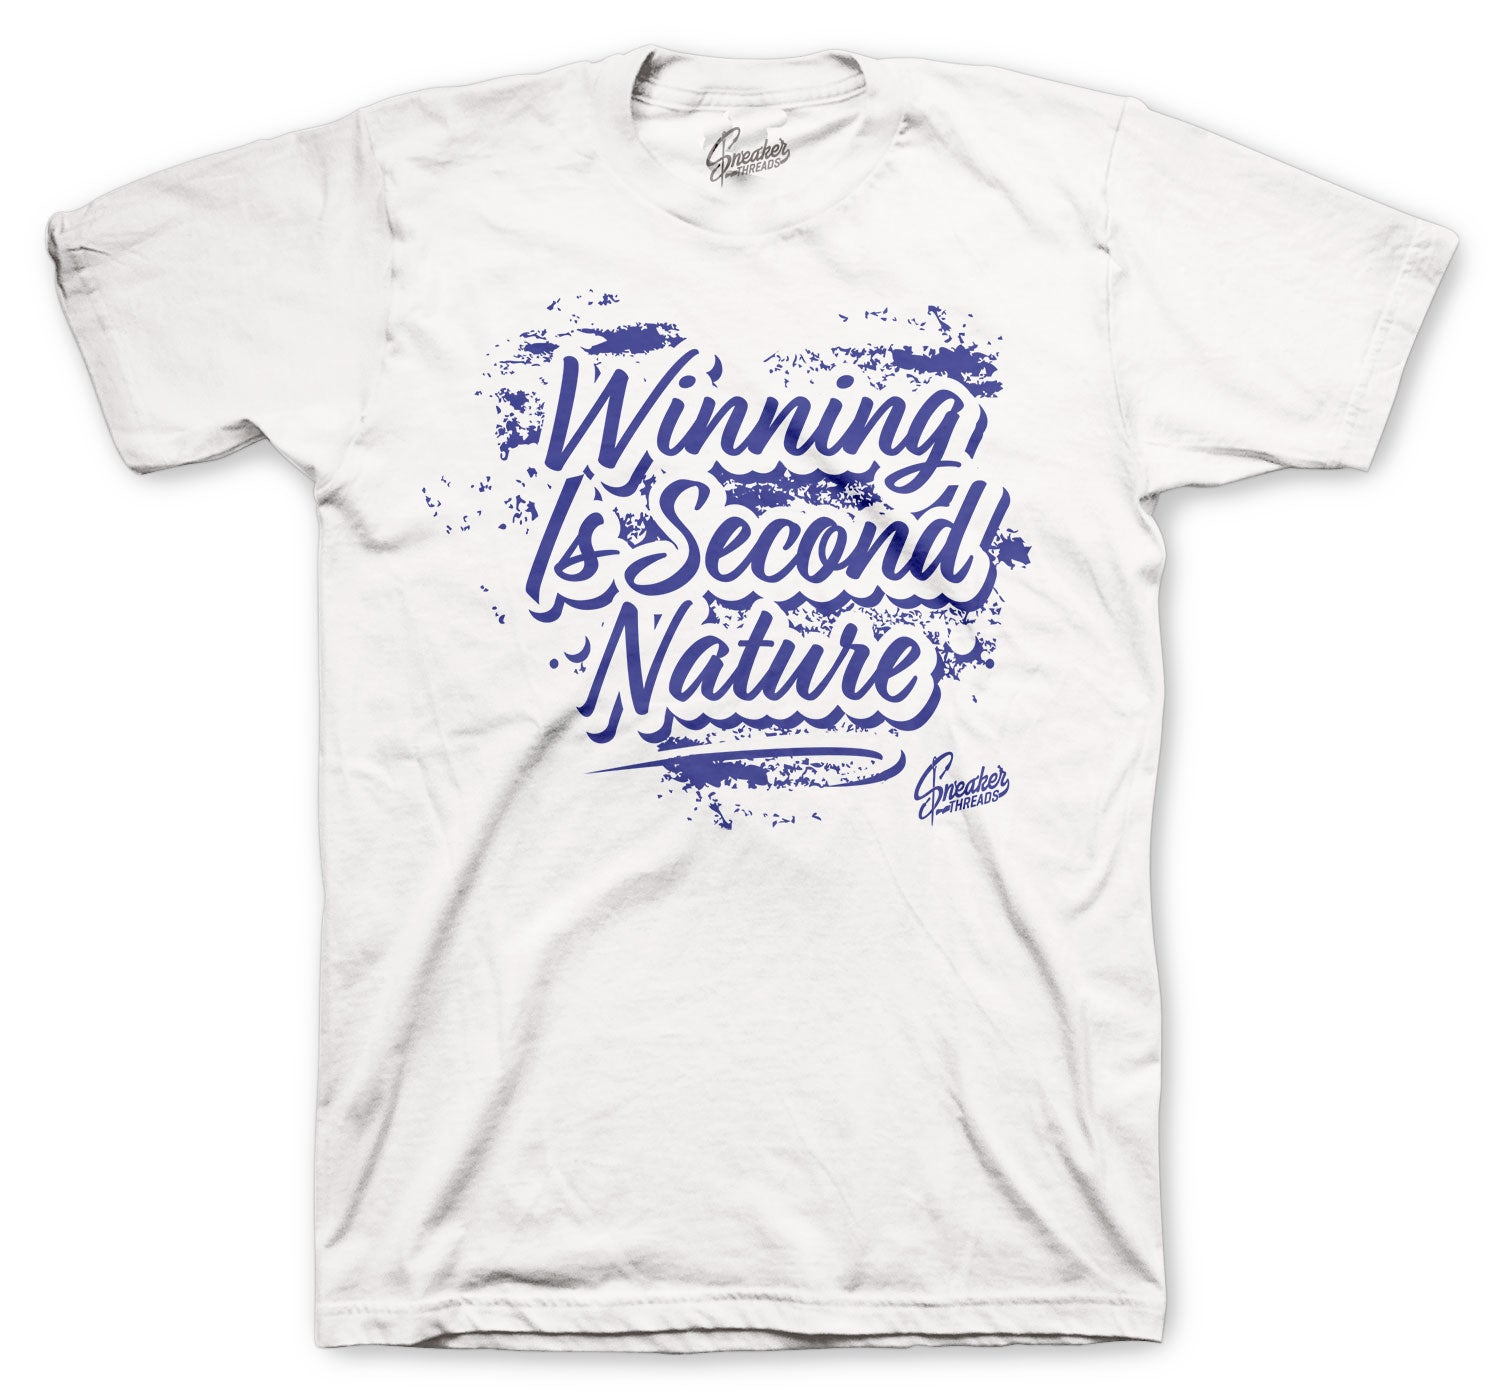 Jordan 11 Low Concord Second Nature Shirt